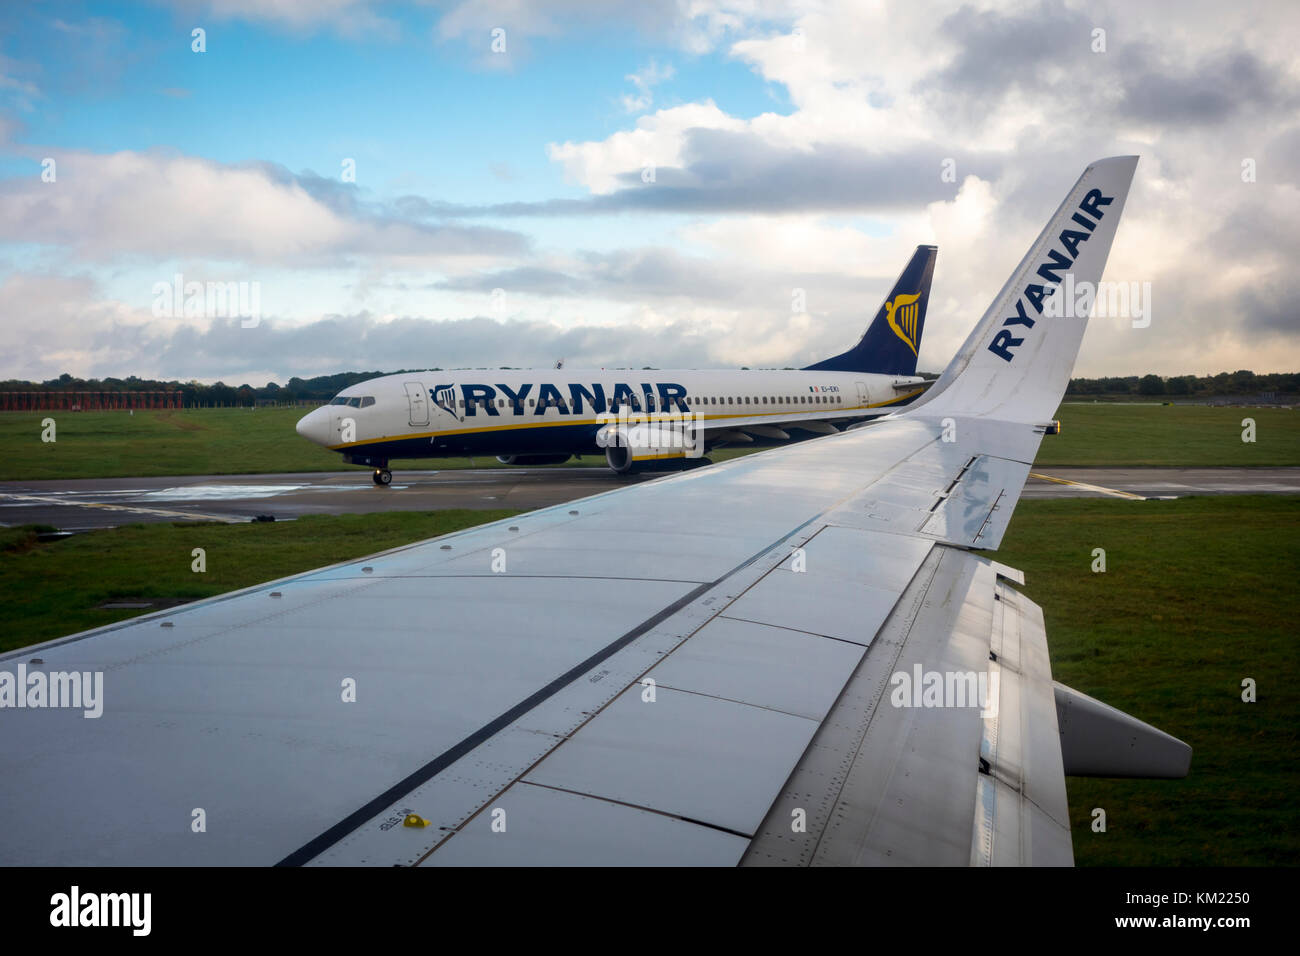 View of a Ryanair plane, aeroplane, airplane, waiting to enter the runway from inside another plane, Stansted Airport, - Stock Image